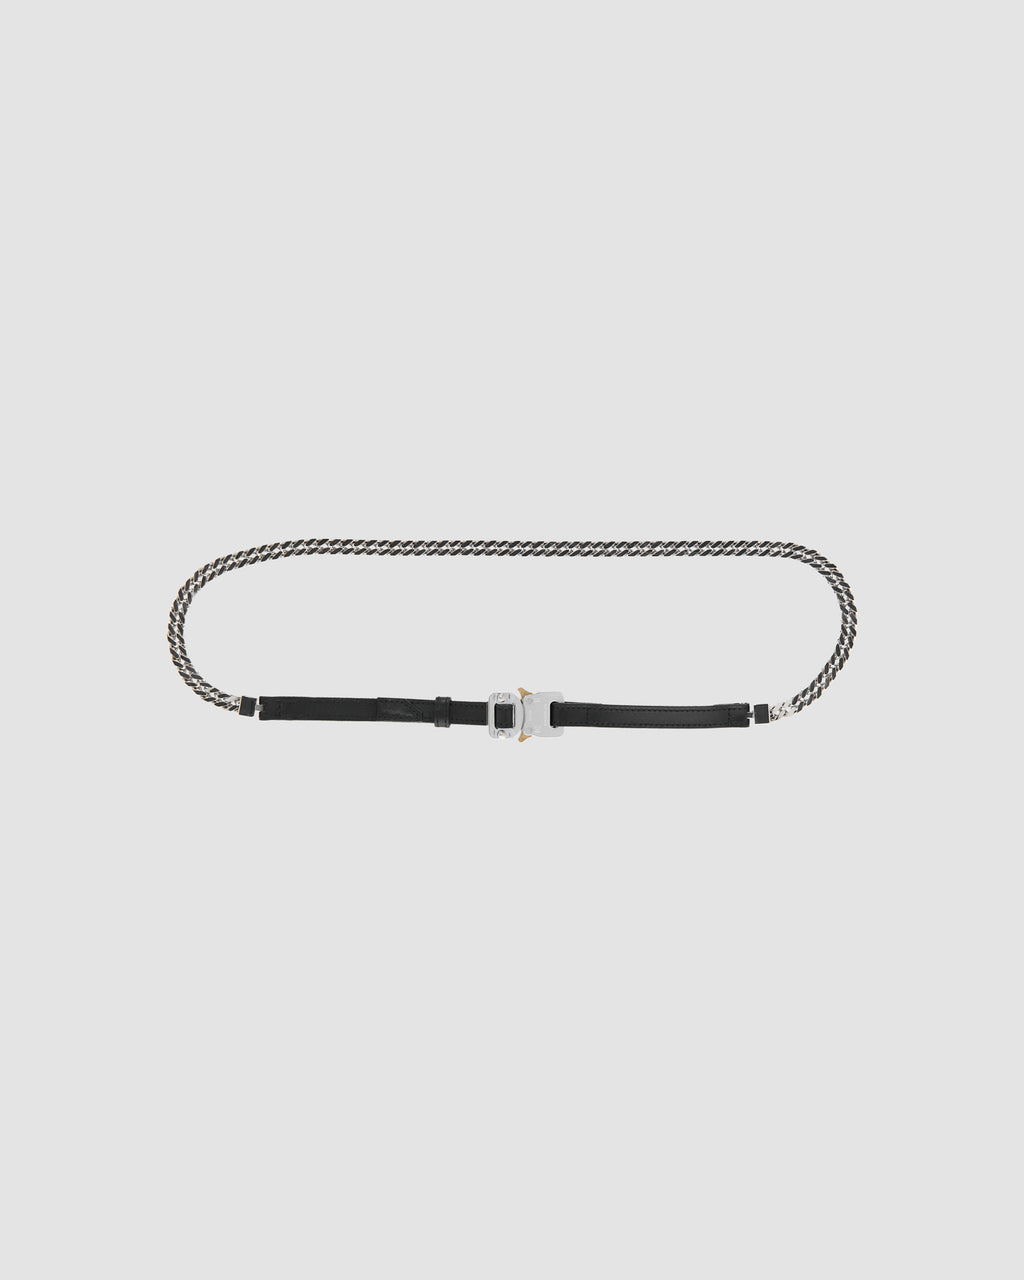 1017 ALYX 9SM | CUBIX CHAIN BELT W BUCKLE | Belt | Accessories, Belt, BELTS, BLACK, Google Shopping, Man, S20, S20EXSH, UNISEX, Woman